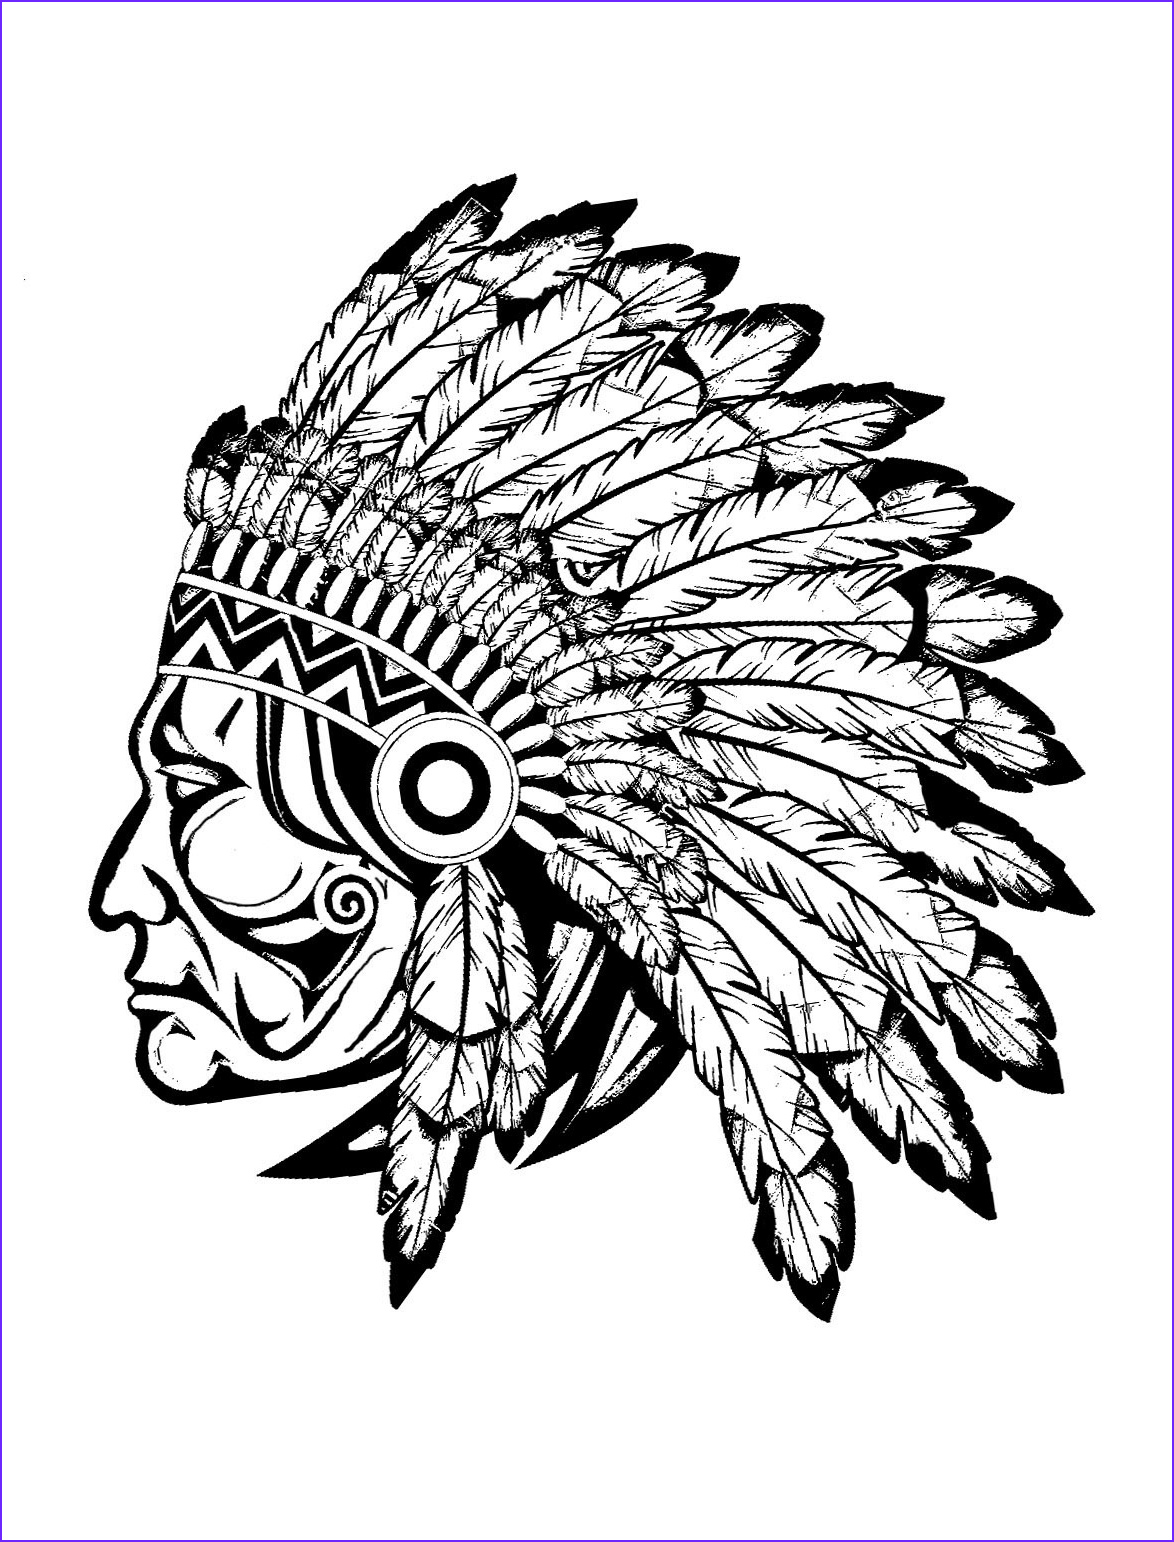 image=native americans coloring adult indian native chief profile 1